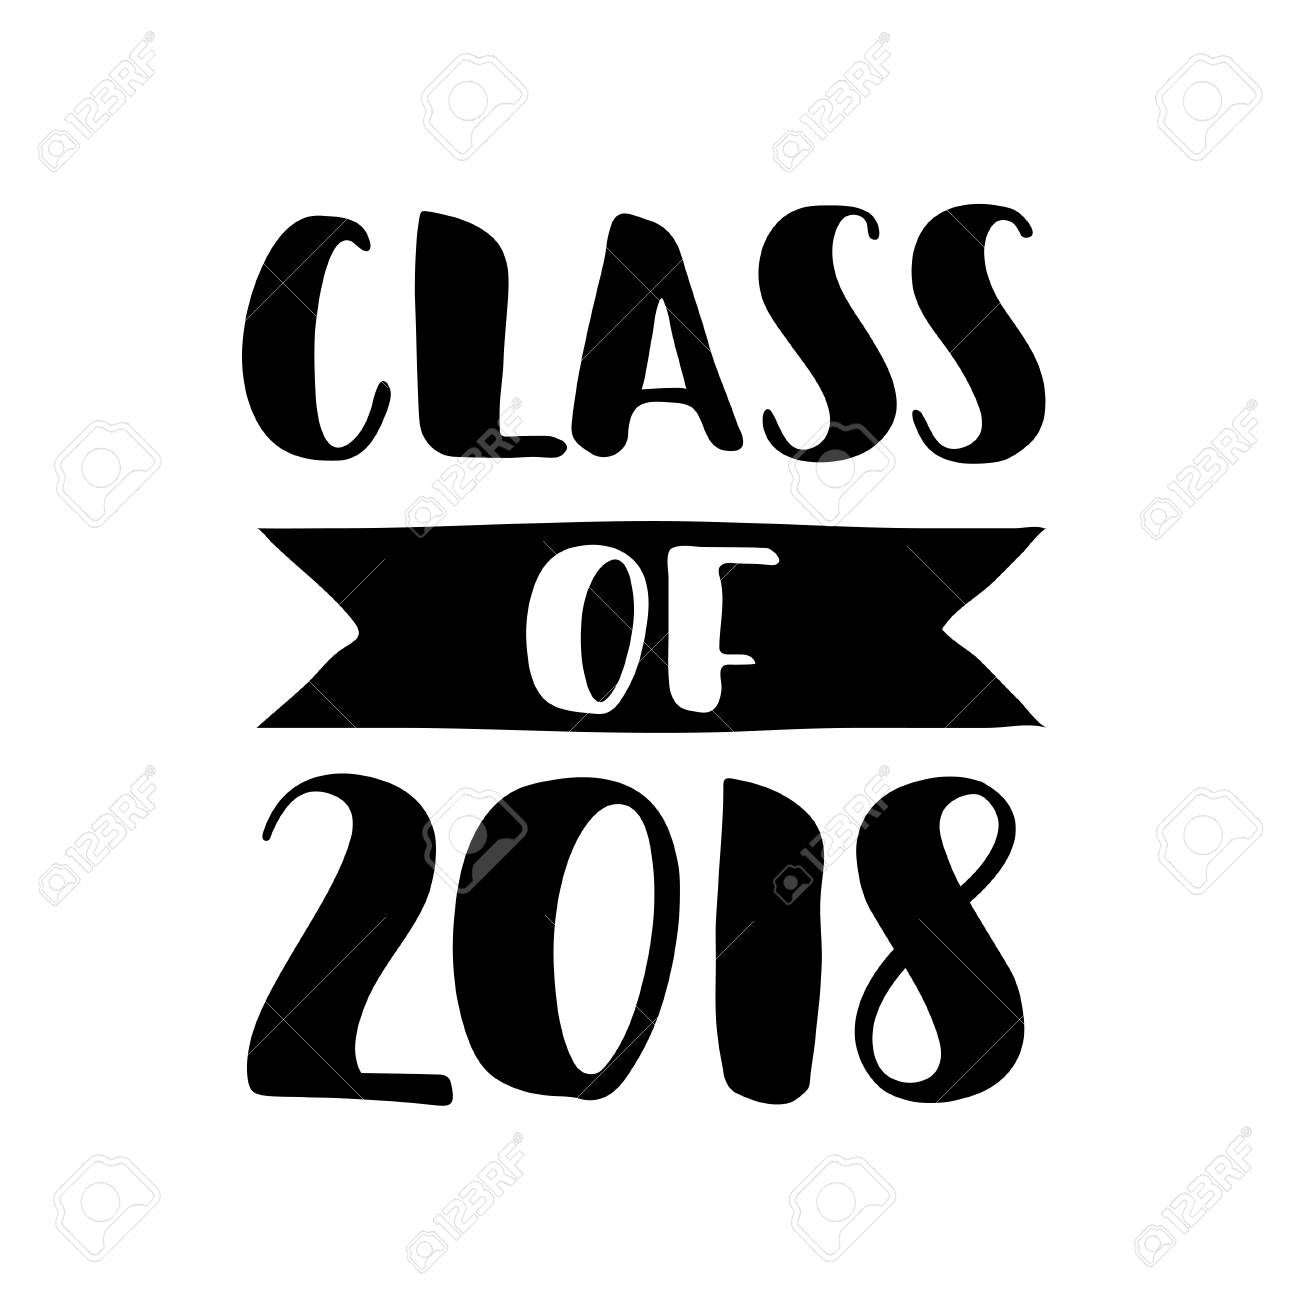 2018 clipart calligraphy class 2018.